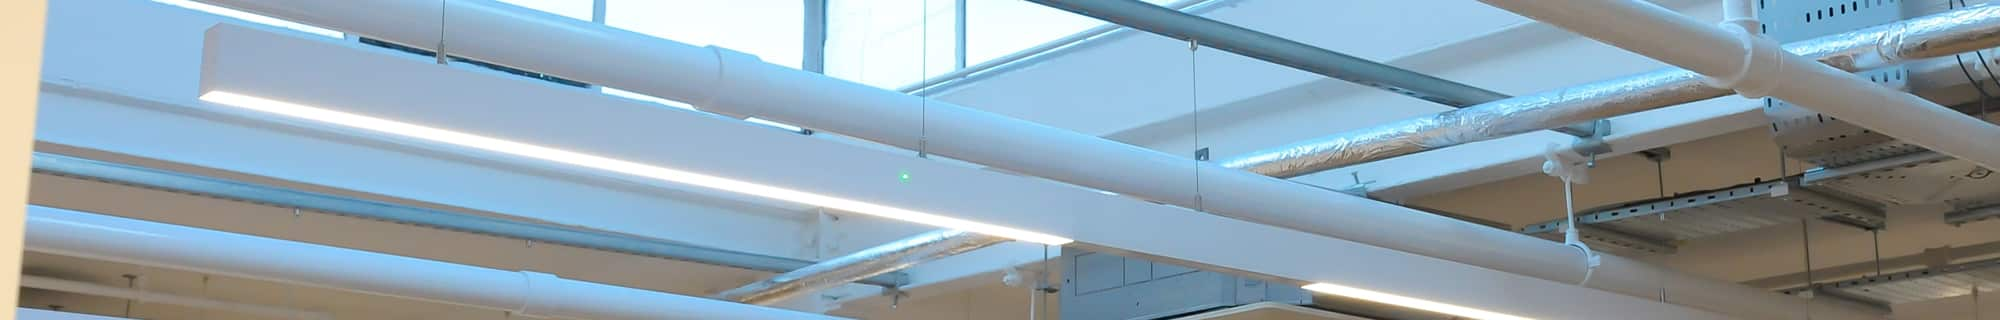 Suspended Linear LED with Integral Emergency